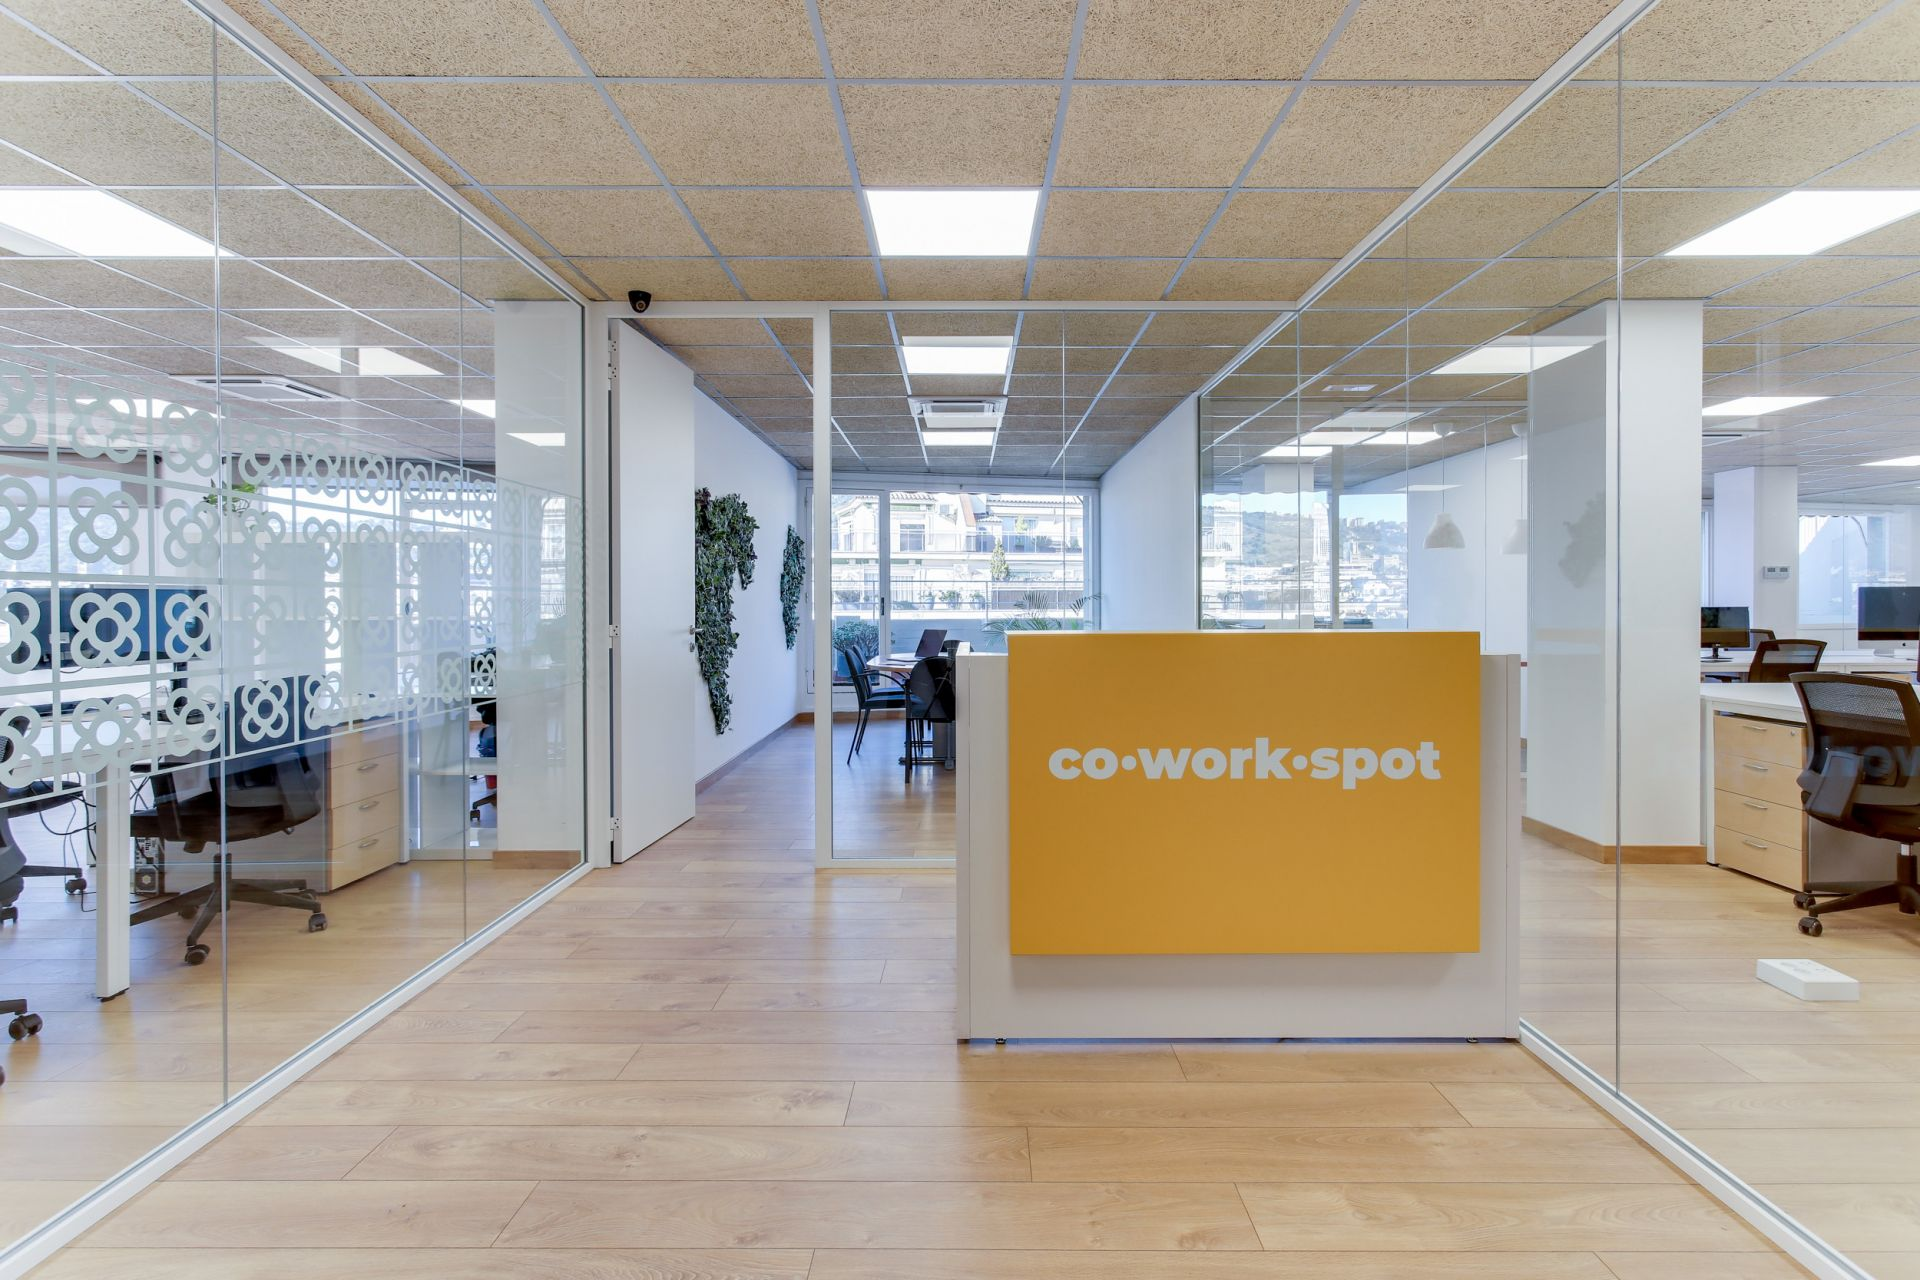 CO·WORK·SPOT, Barcelona